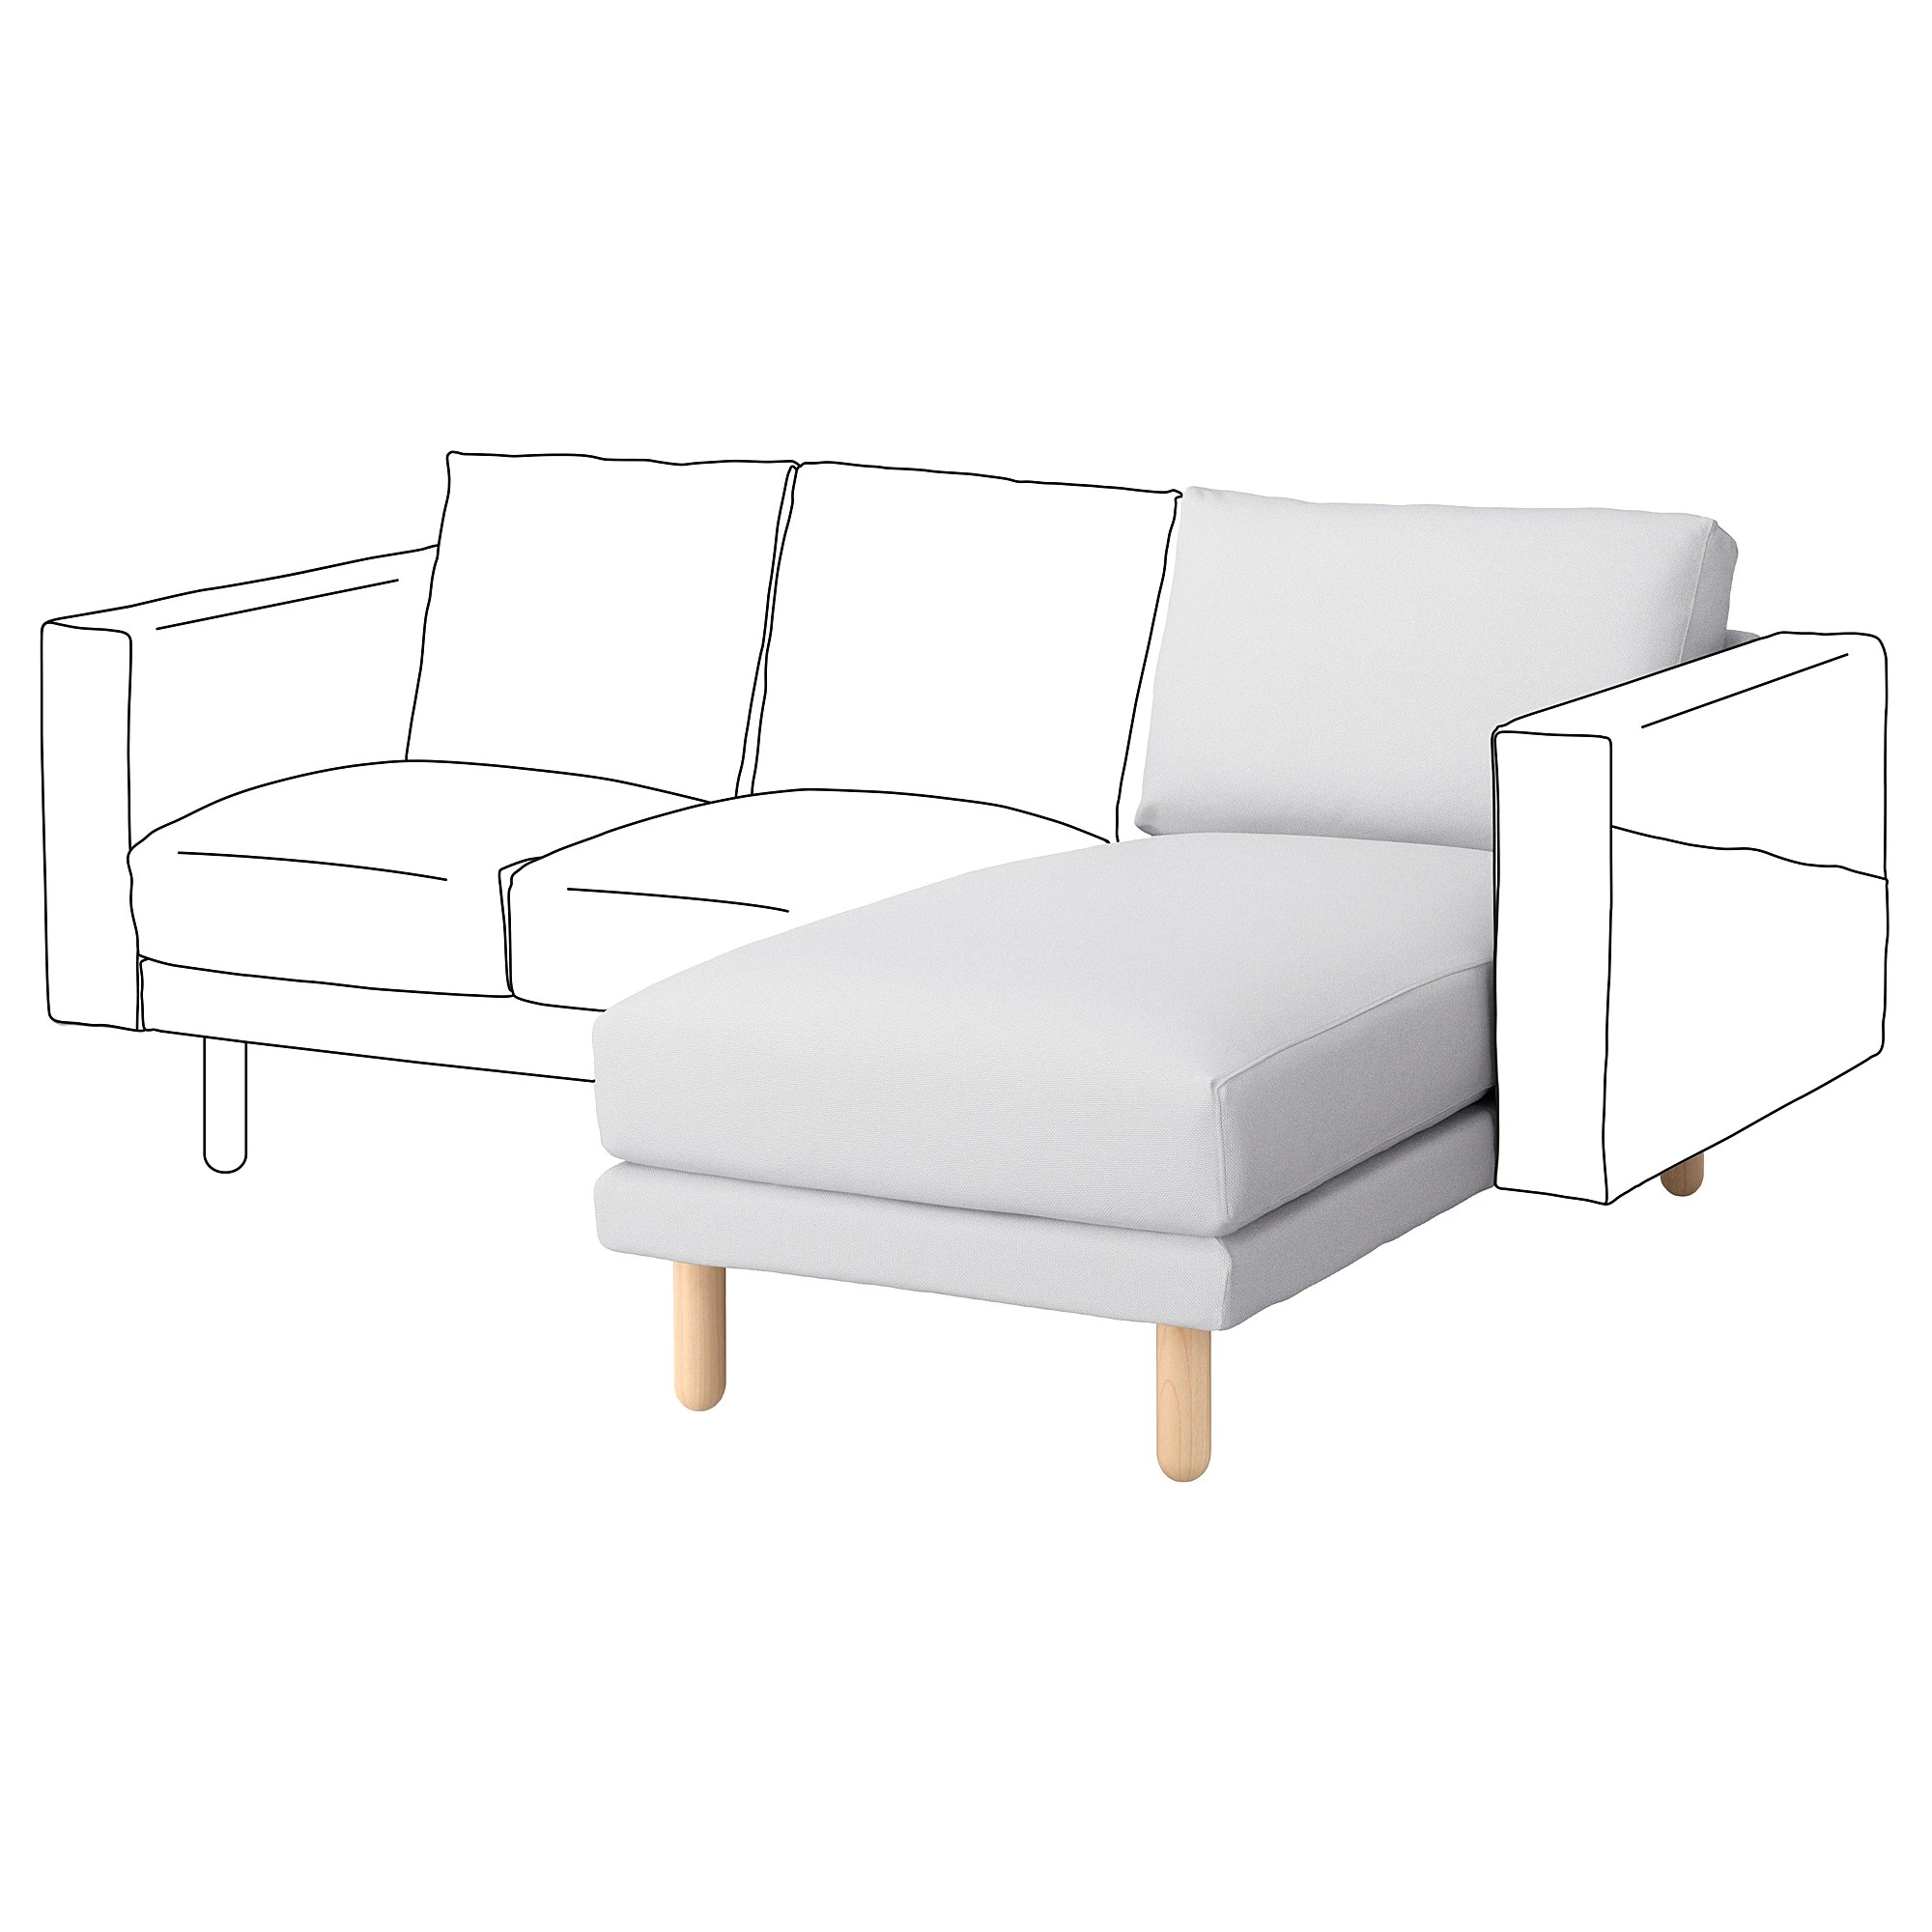 Hoes Chaise Longue Element Norsborg Finnsta Wit